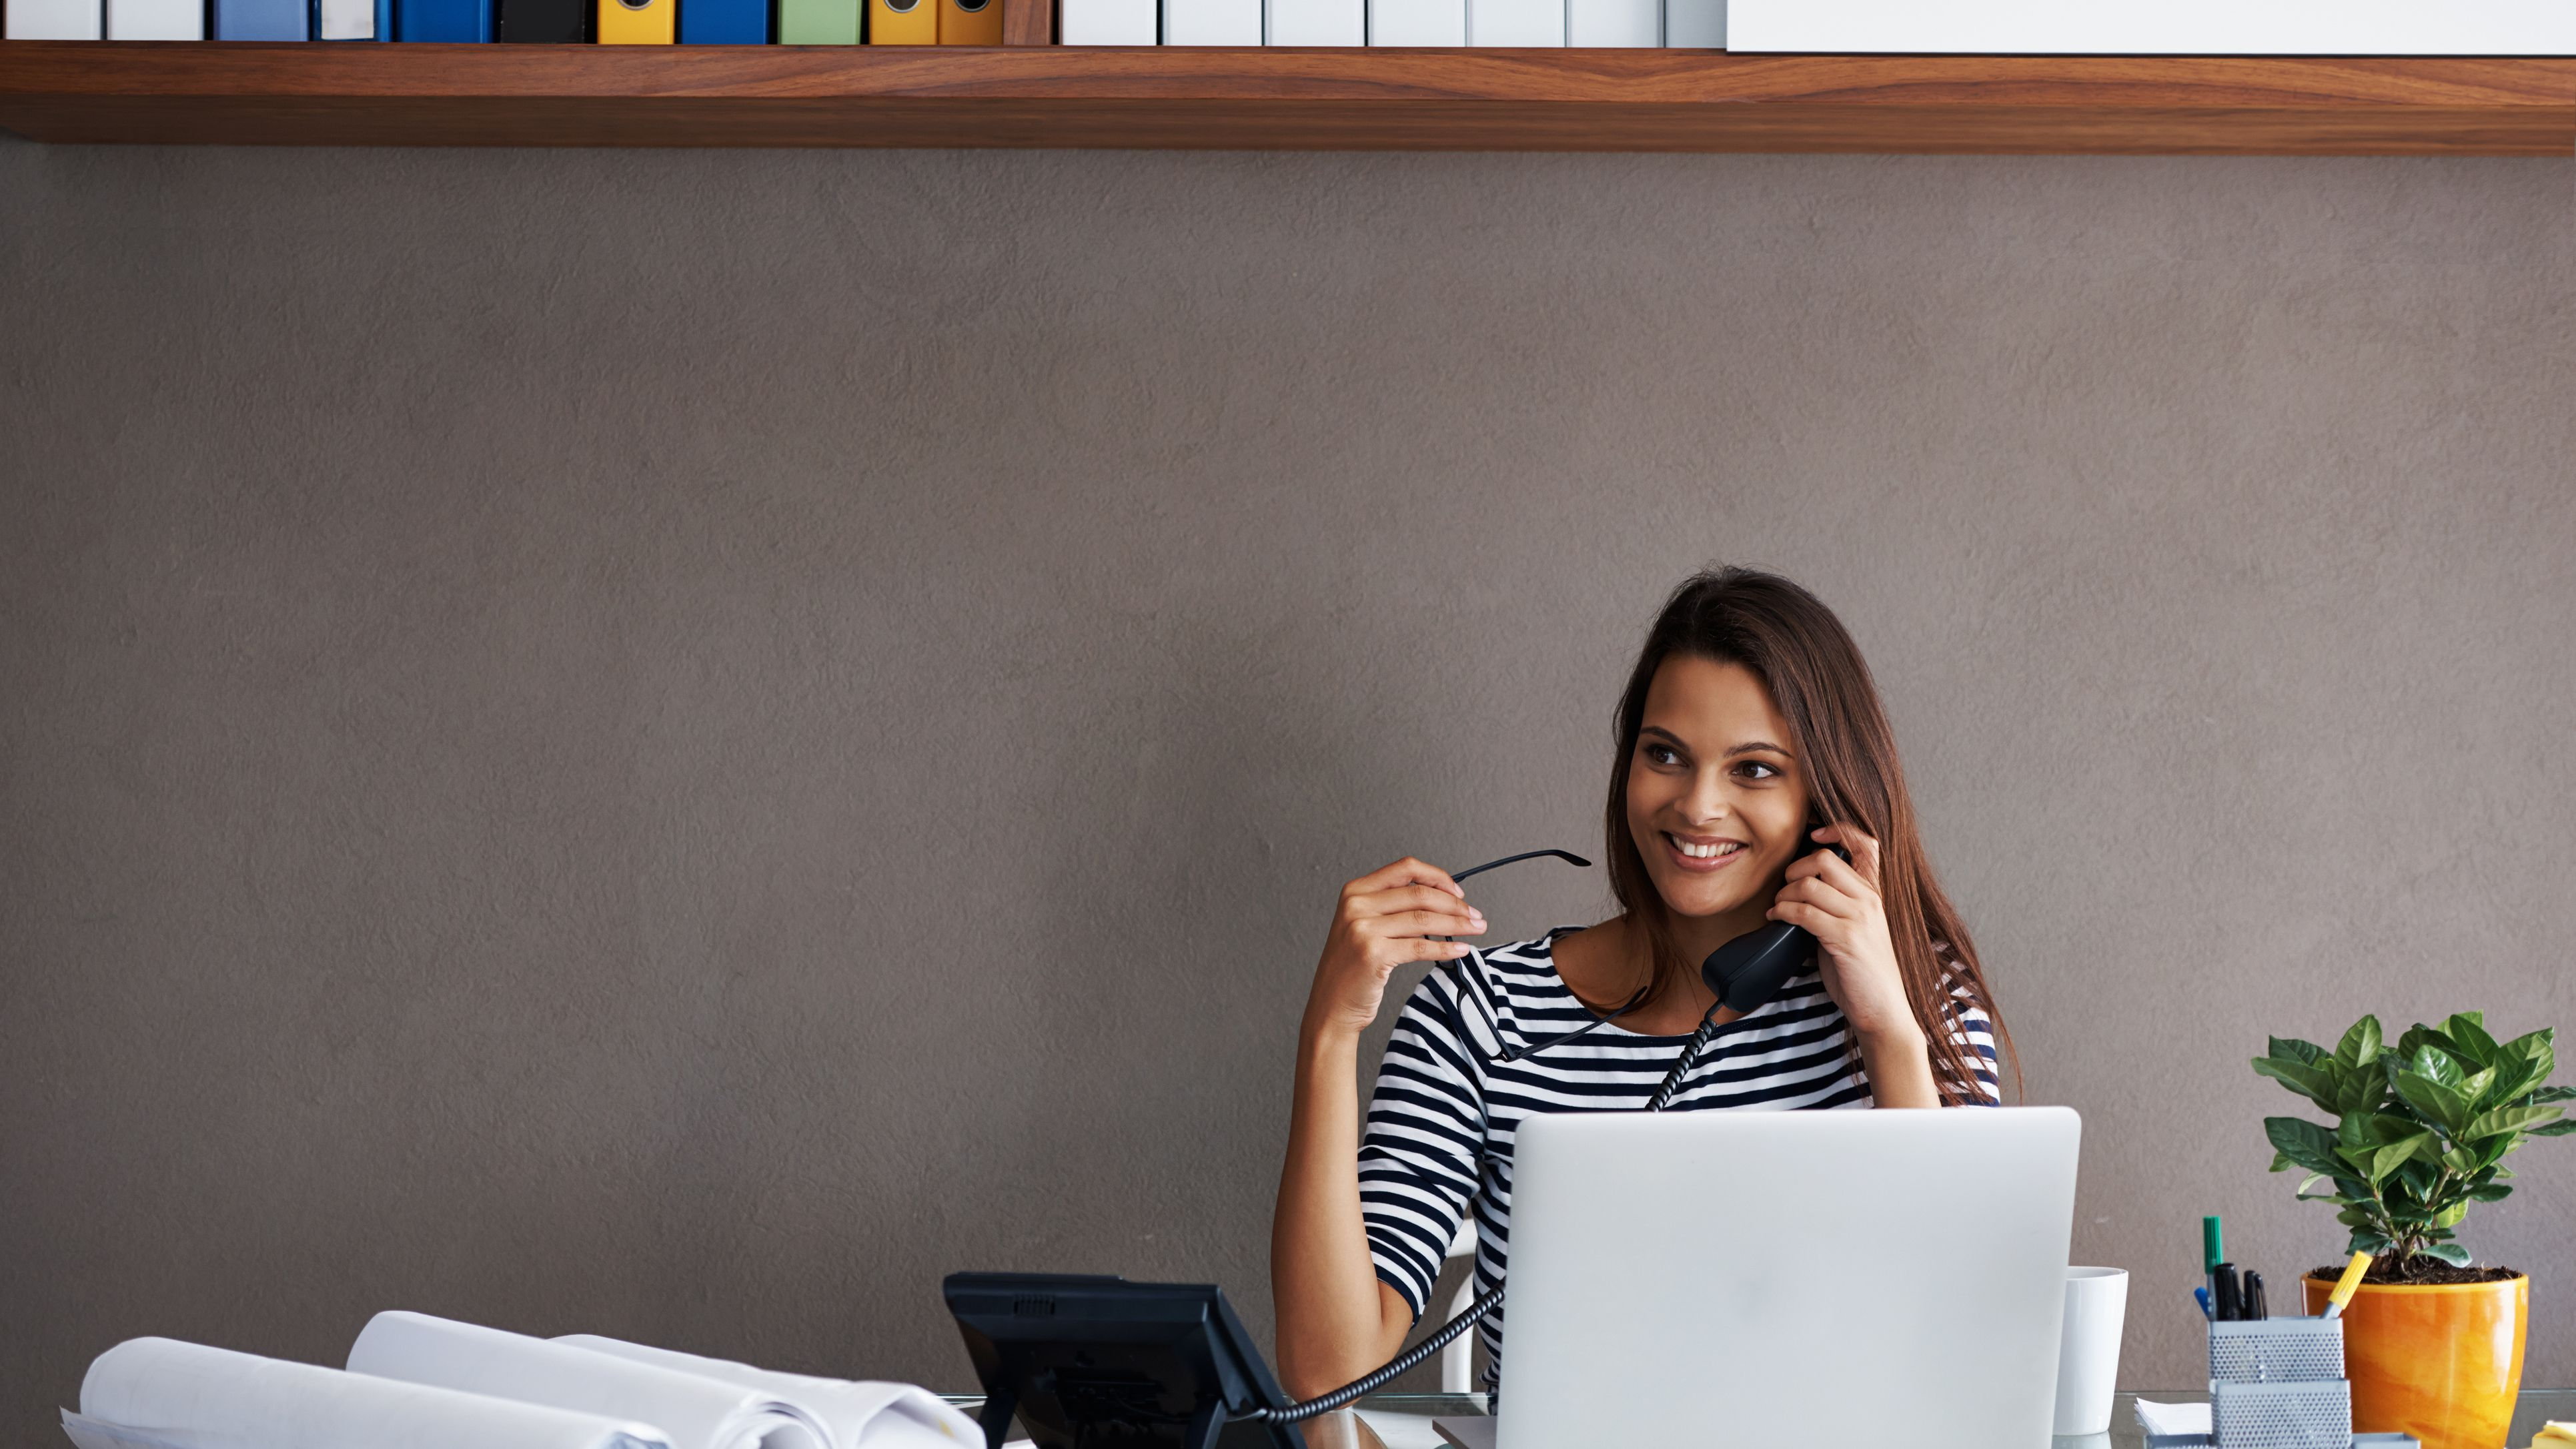 3 Feng Shui Tips For A Small Office With No Windows